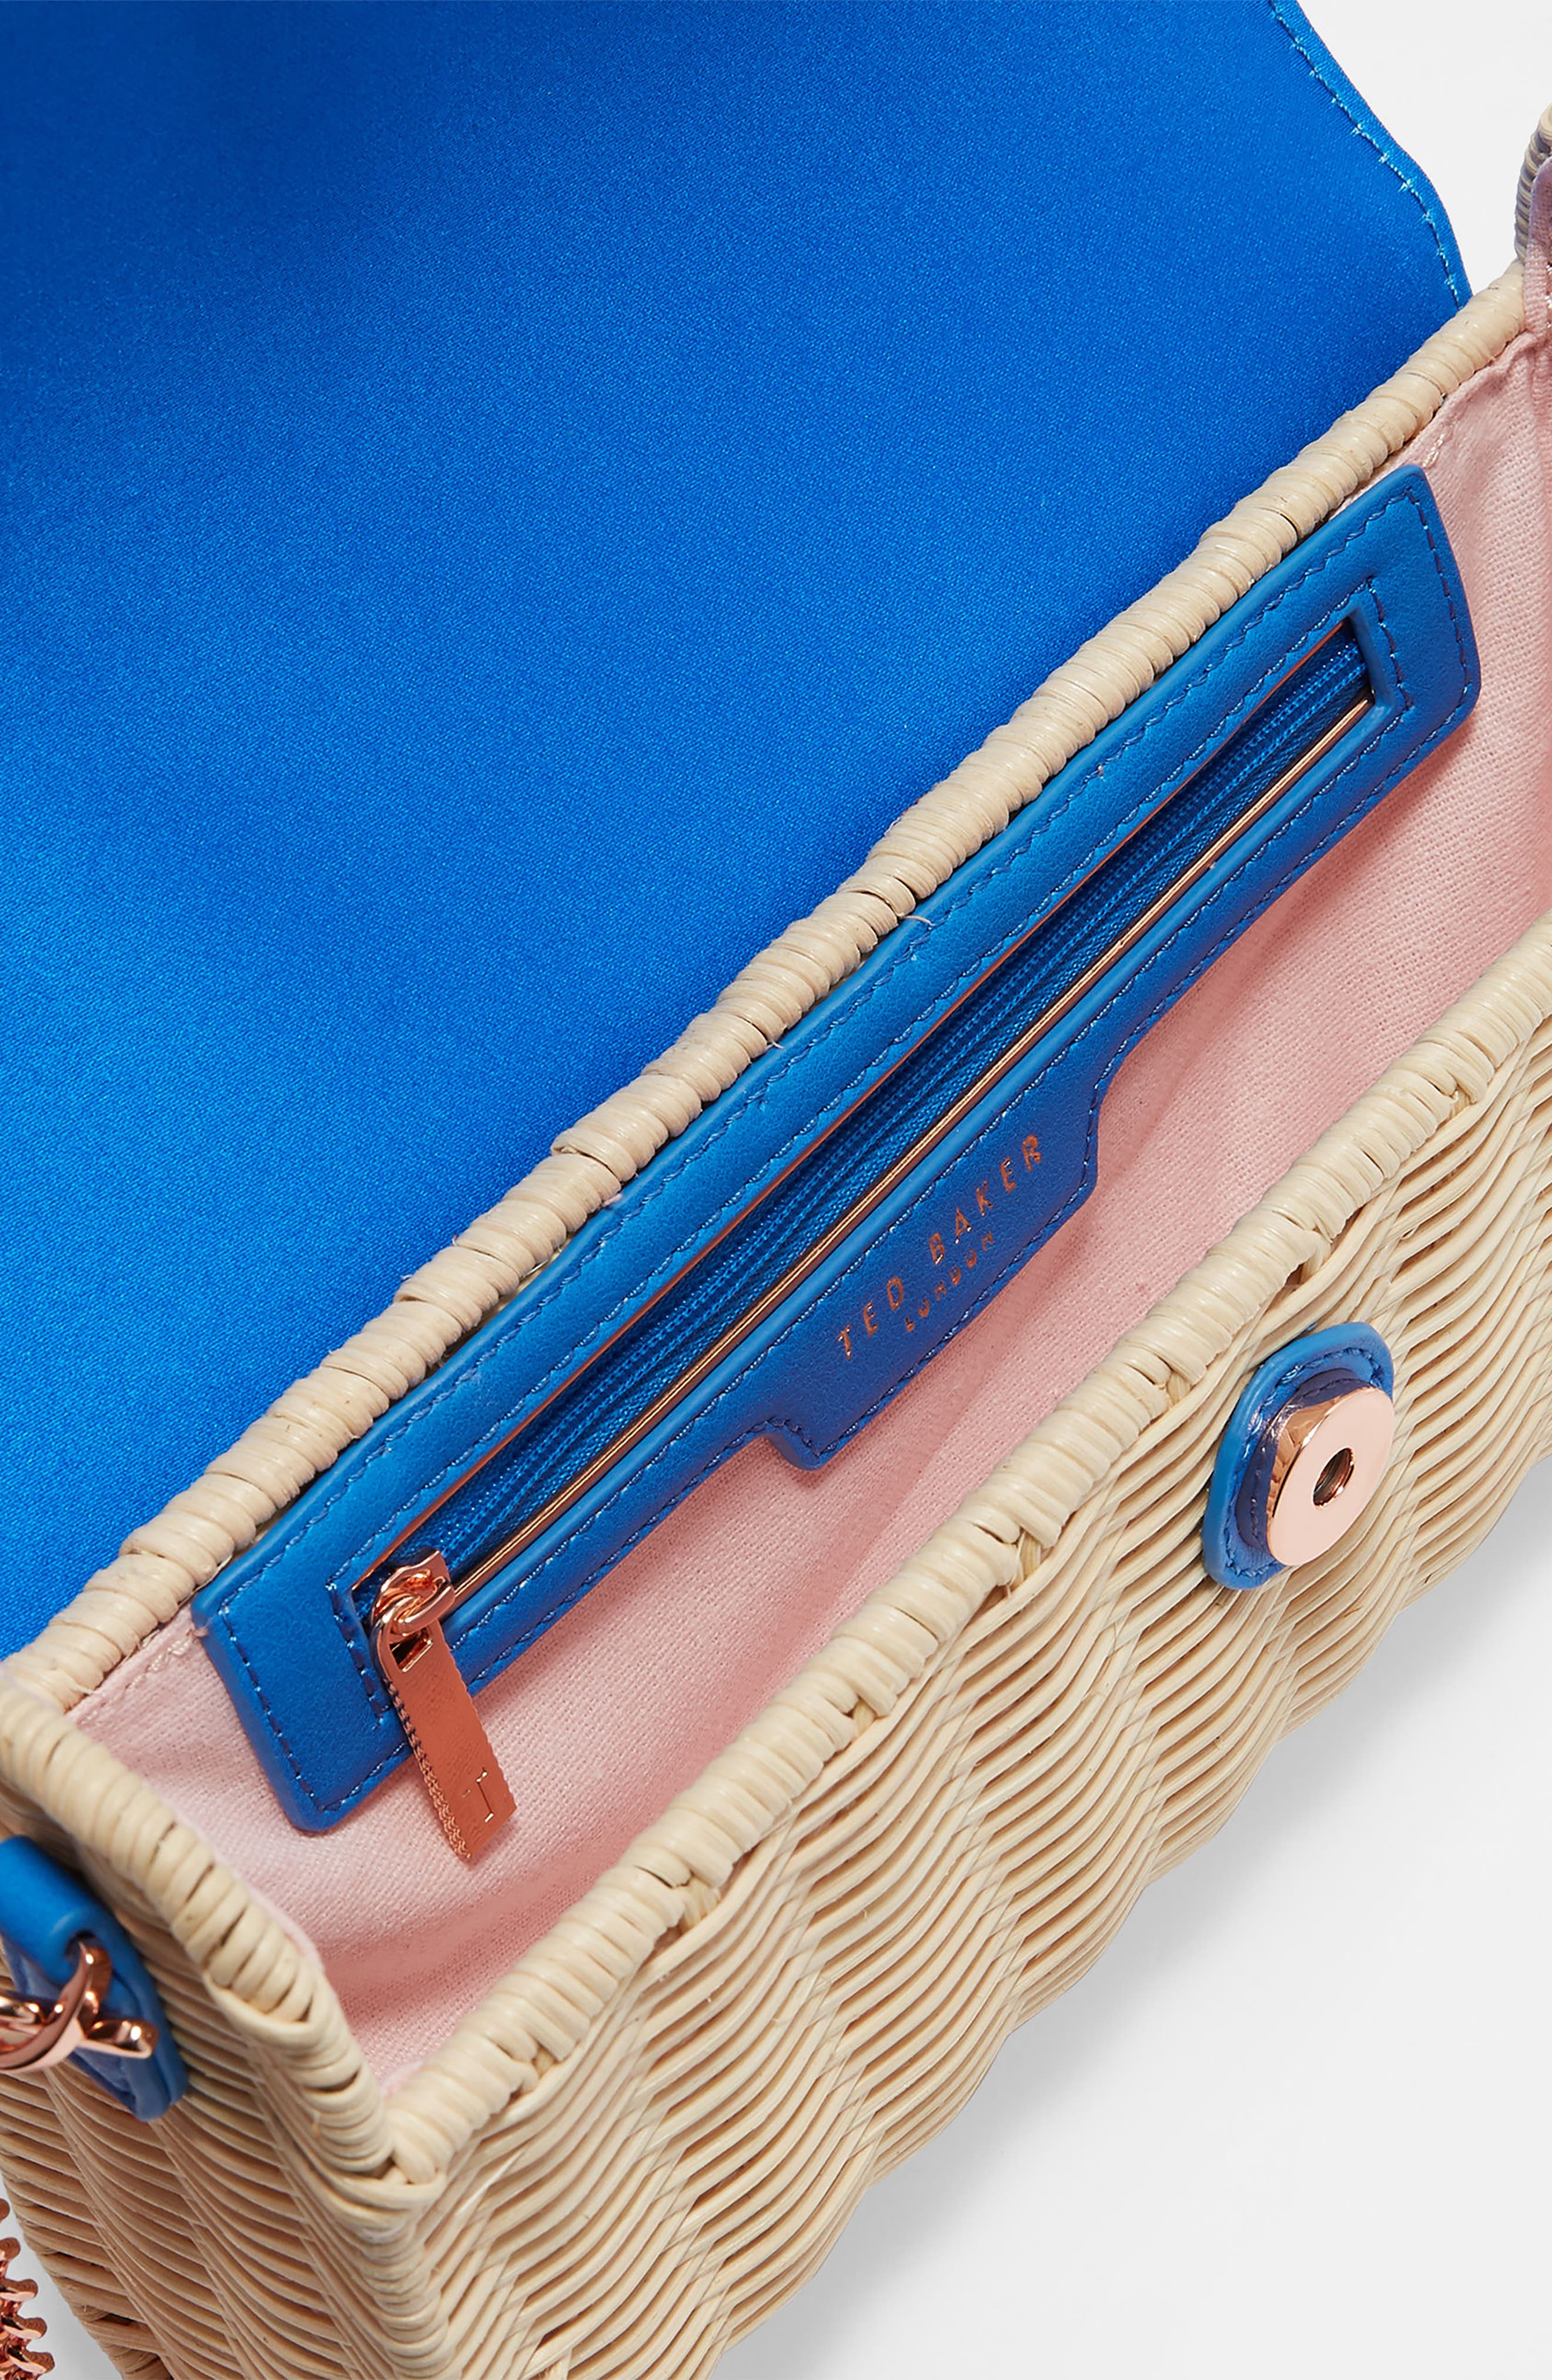 Haarley Harmony Woven Rattan Clutch,                             Alternate thumbnail 2, color,                             430